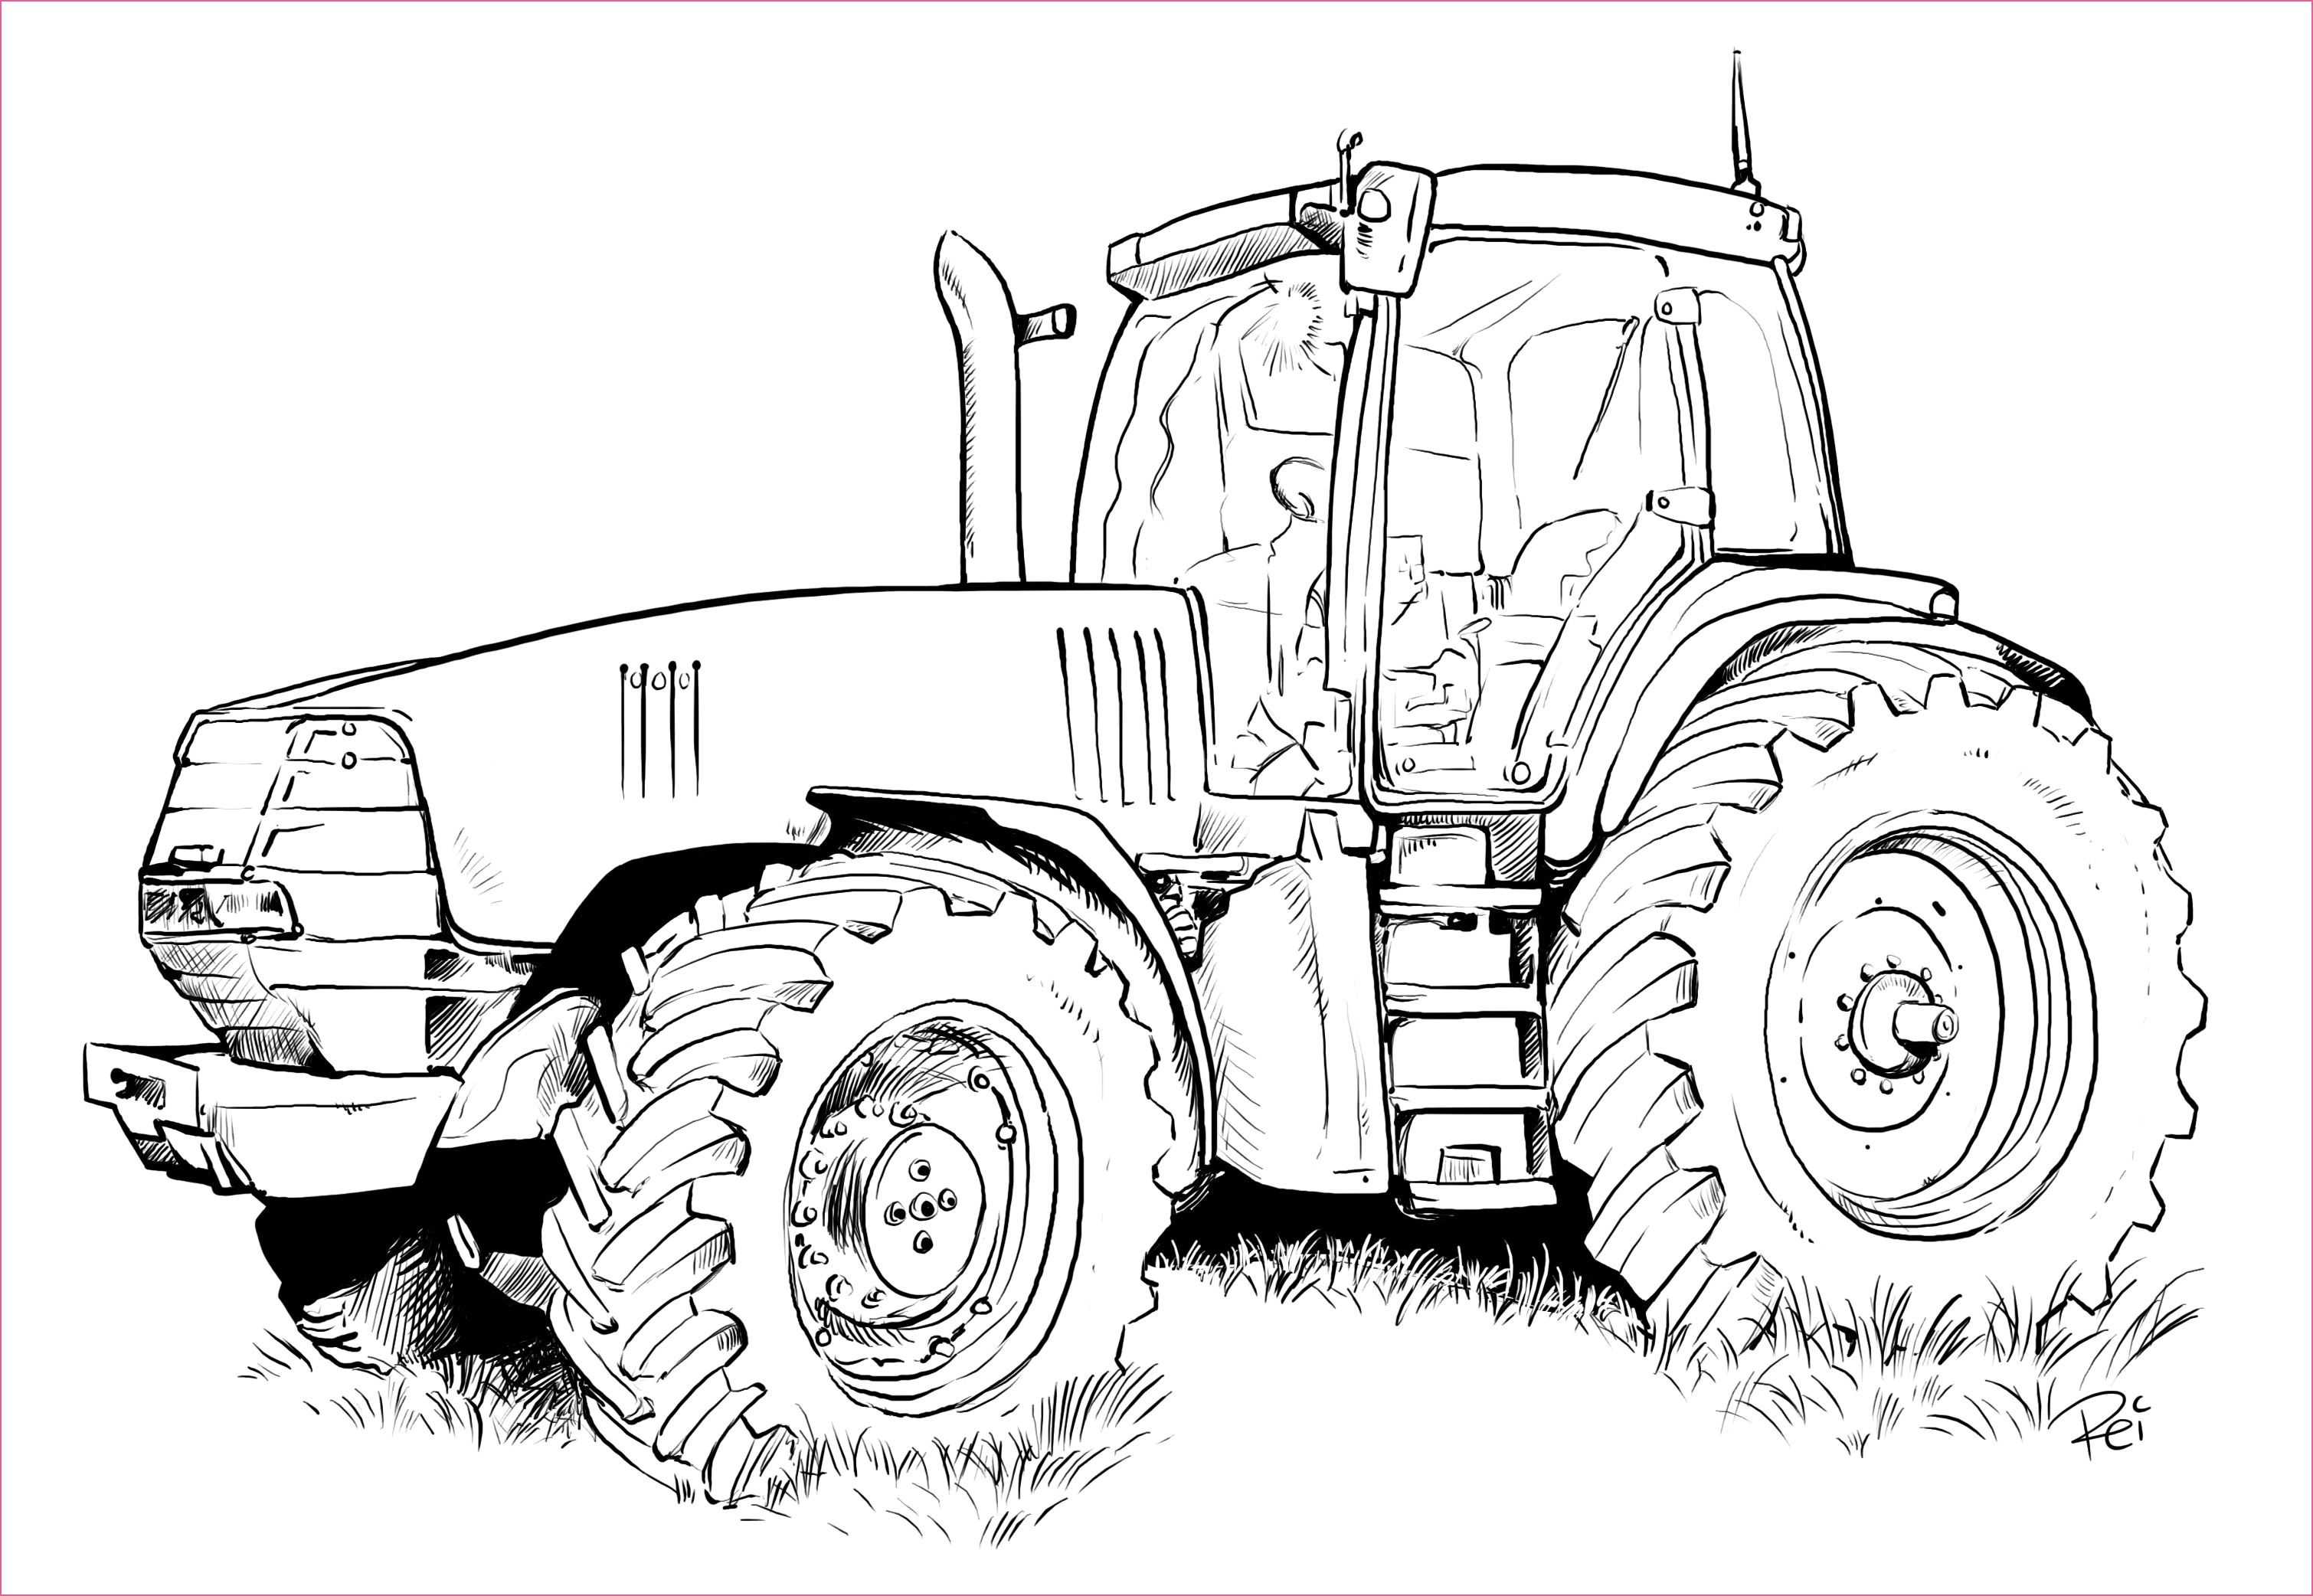 Verkehrserziehung Kindergarten Ausmalbilder Tractor Coloring Pages Coloring Pages Inspirational Tractor Drawing